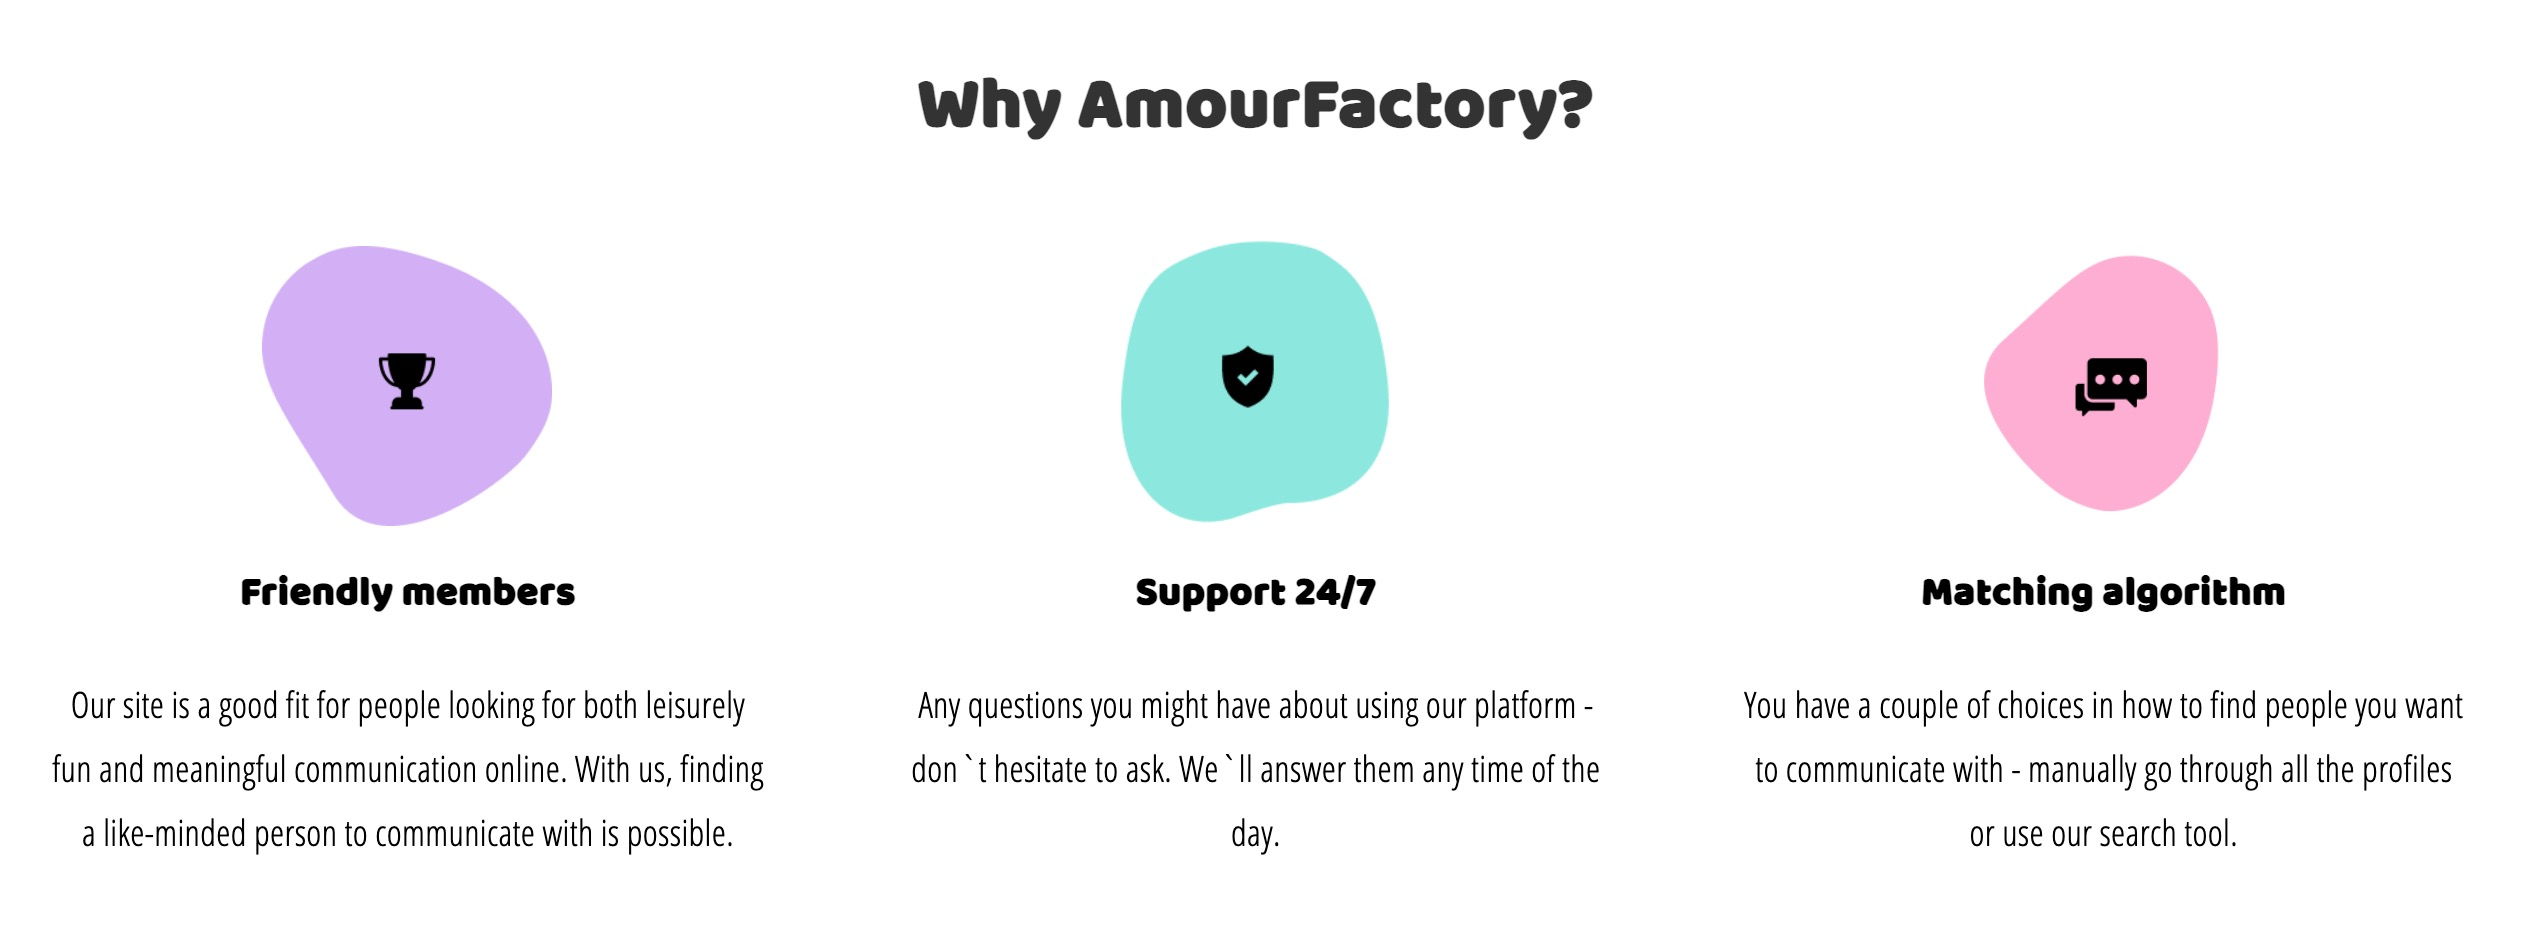 AmourFactory why choose